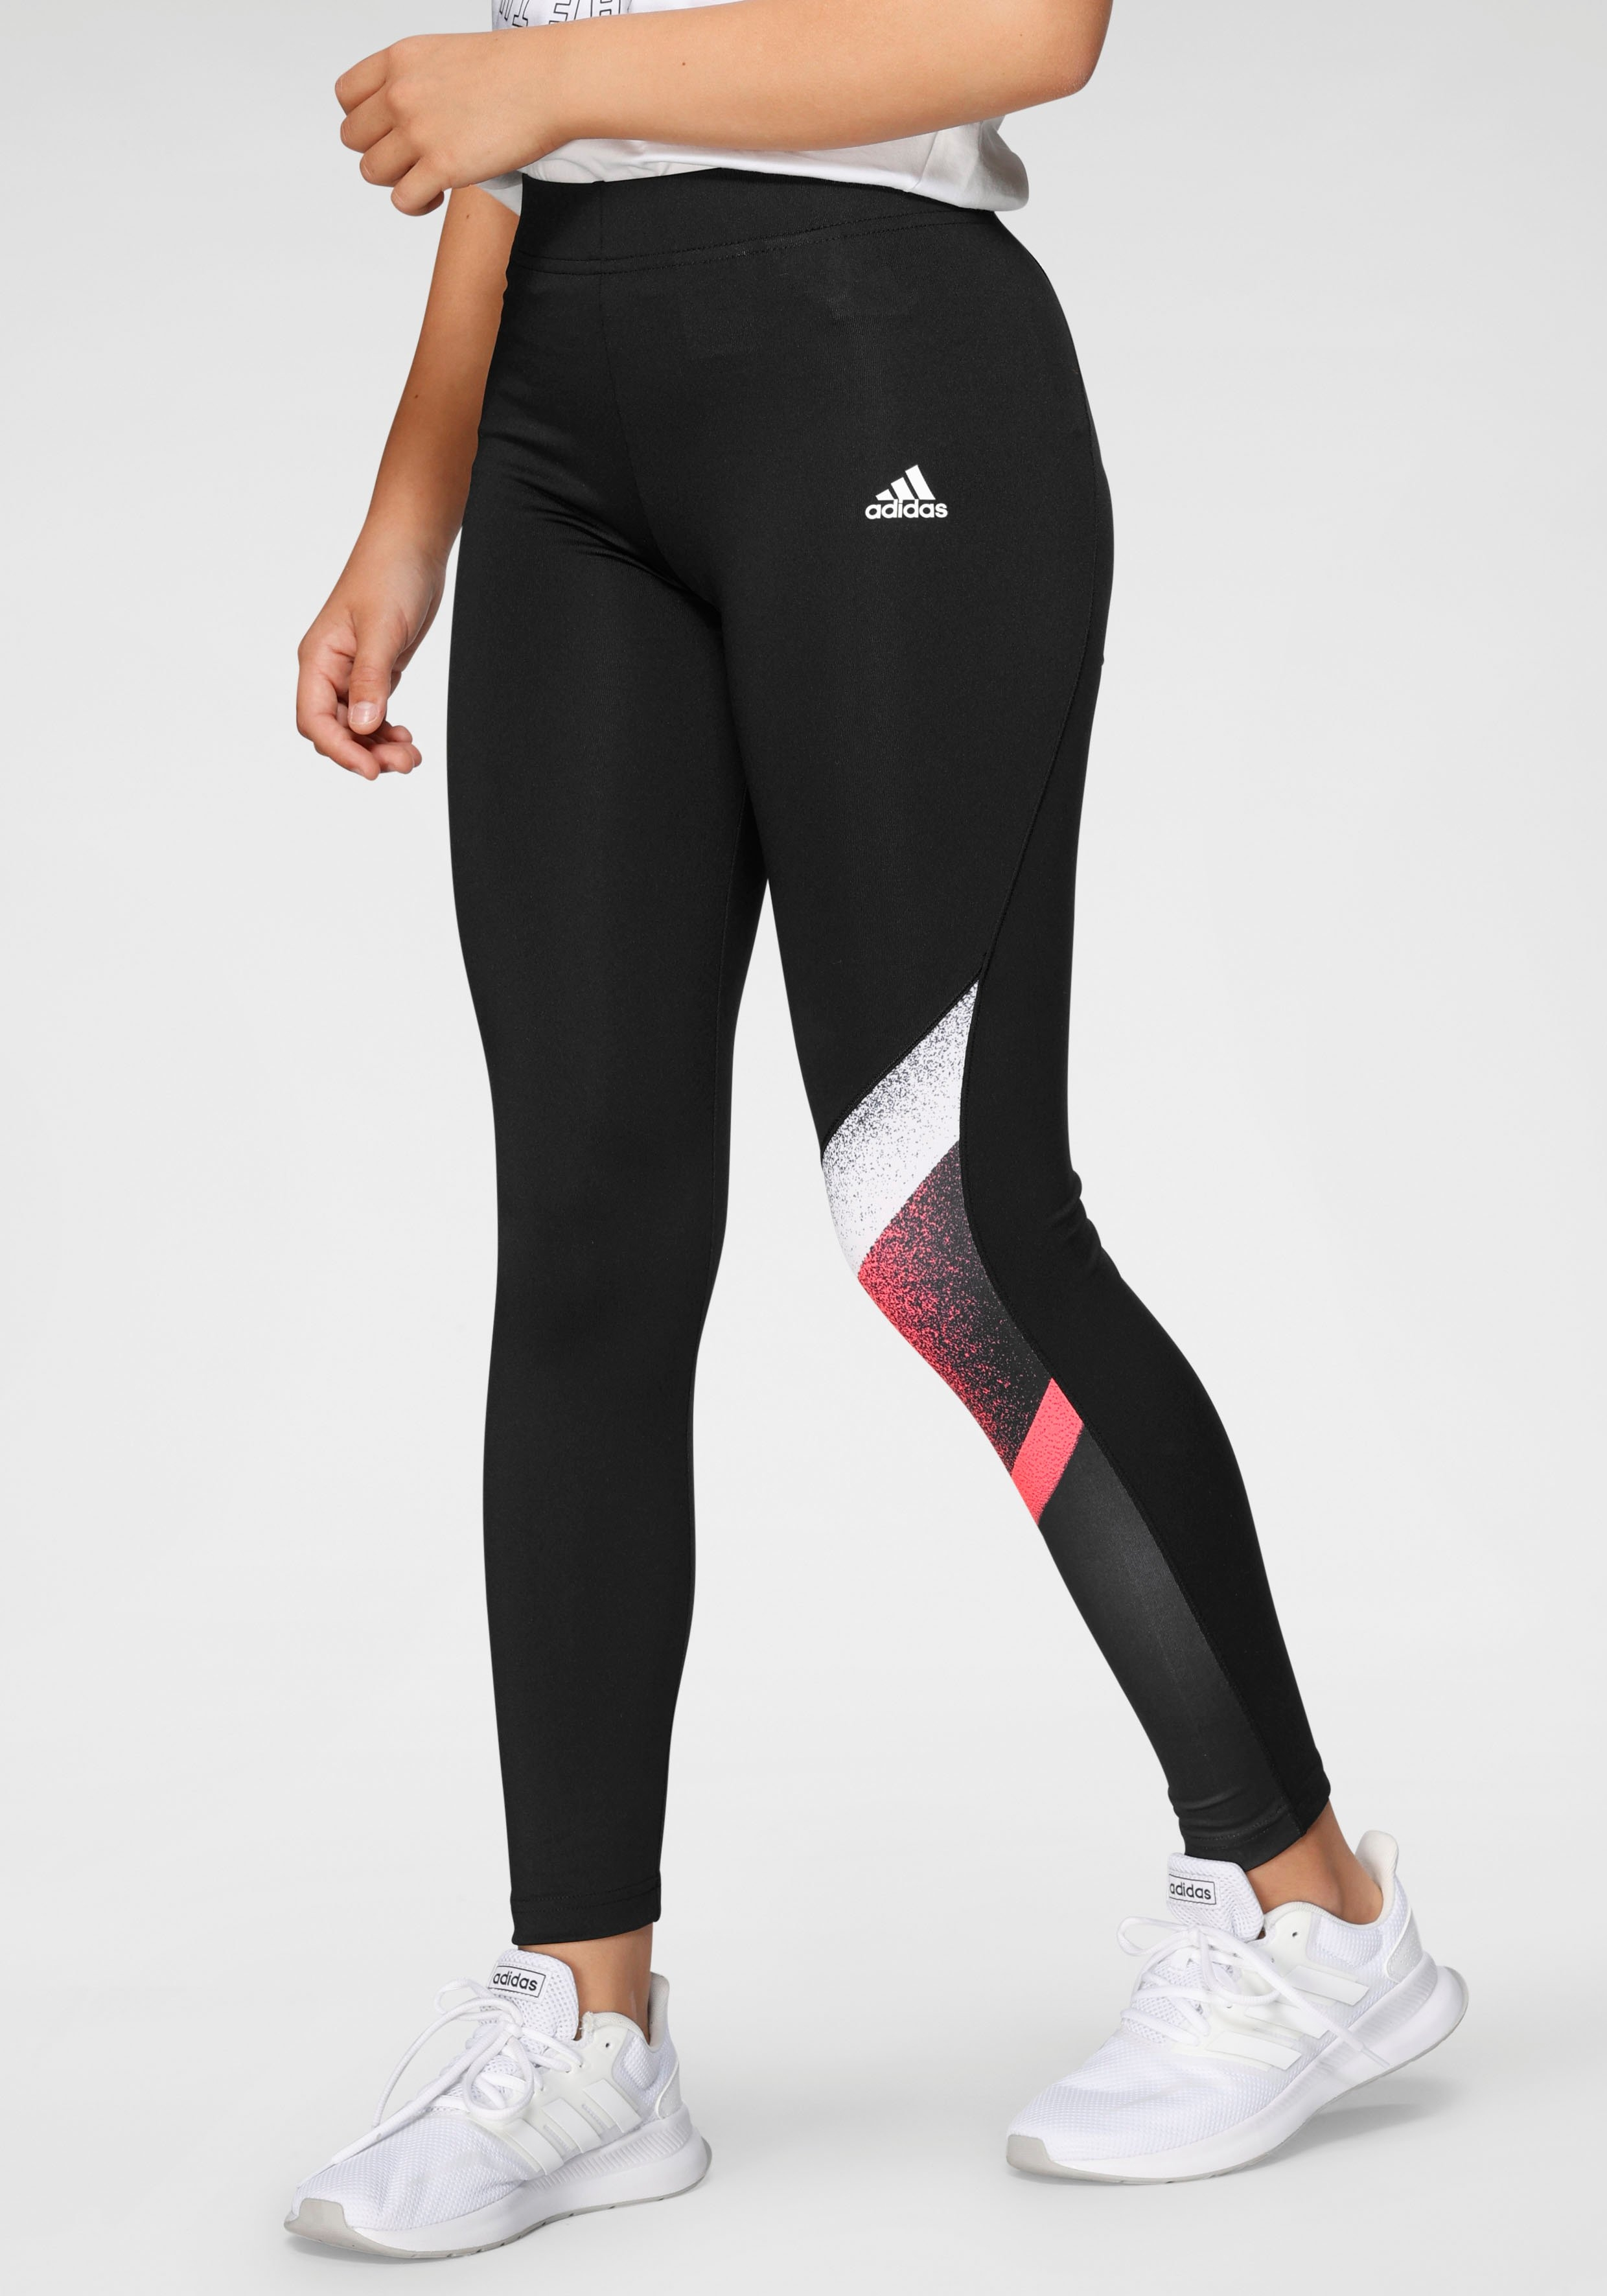 adidas Performance functionele tights »YOUNG GIRL TIGHT« nu online kopen bij OTTO